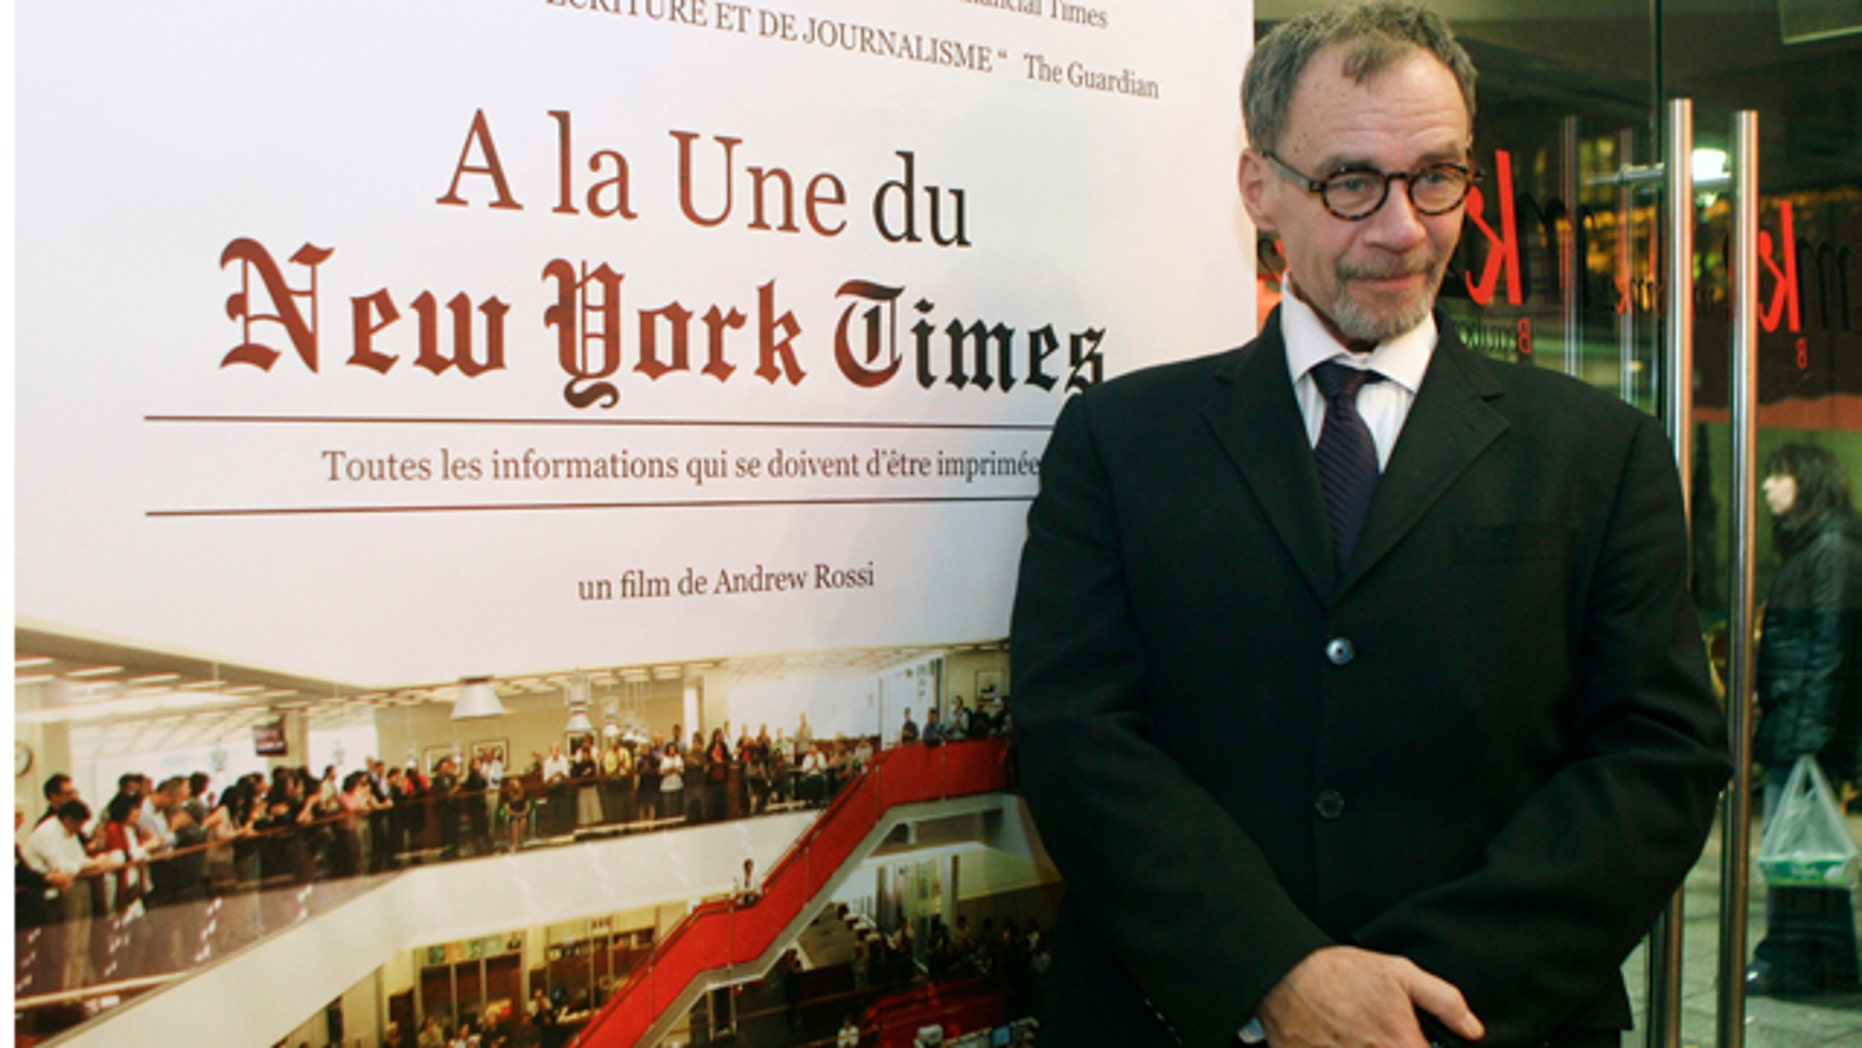 FILE - In this Nov. 21, 2011, file photo, New York Times journalist David Carr poses for a photograph as he arrives for the French premiere of the documentary 'Page One: A Year Inside The New York Times' in Paris. Carr collapsed at the office and died in a hospital Thursday, Feb. 12, 2015. He was 58. Carr wrote the Media Equation column for the Times, focusing on issues of media in relation to business and culture. (AP Photo/Michel Euler, File)